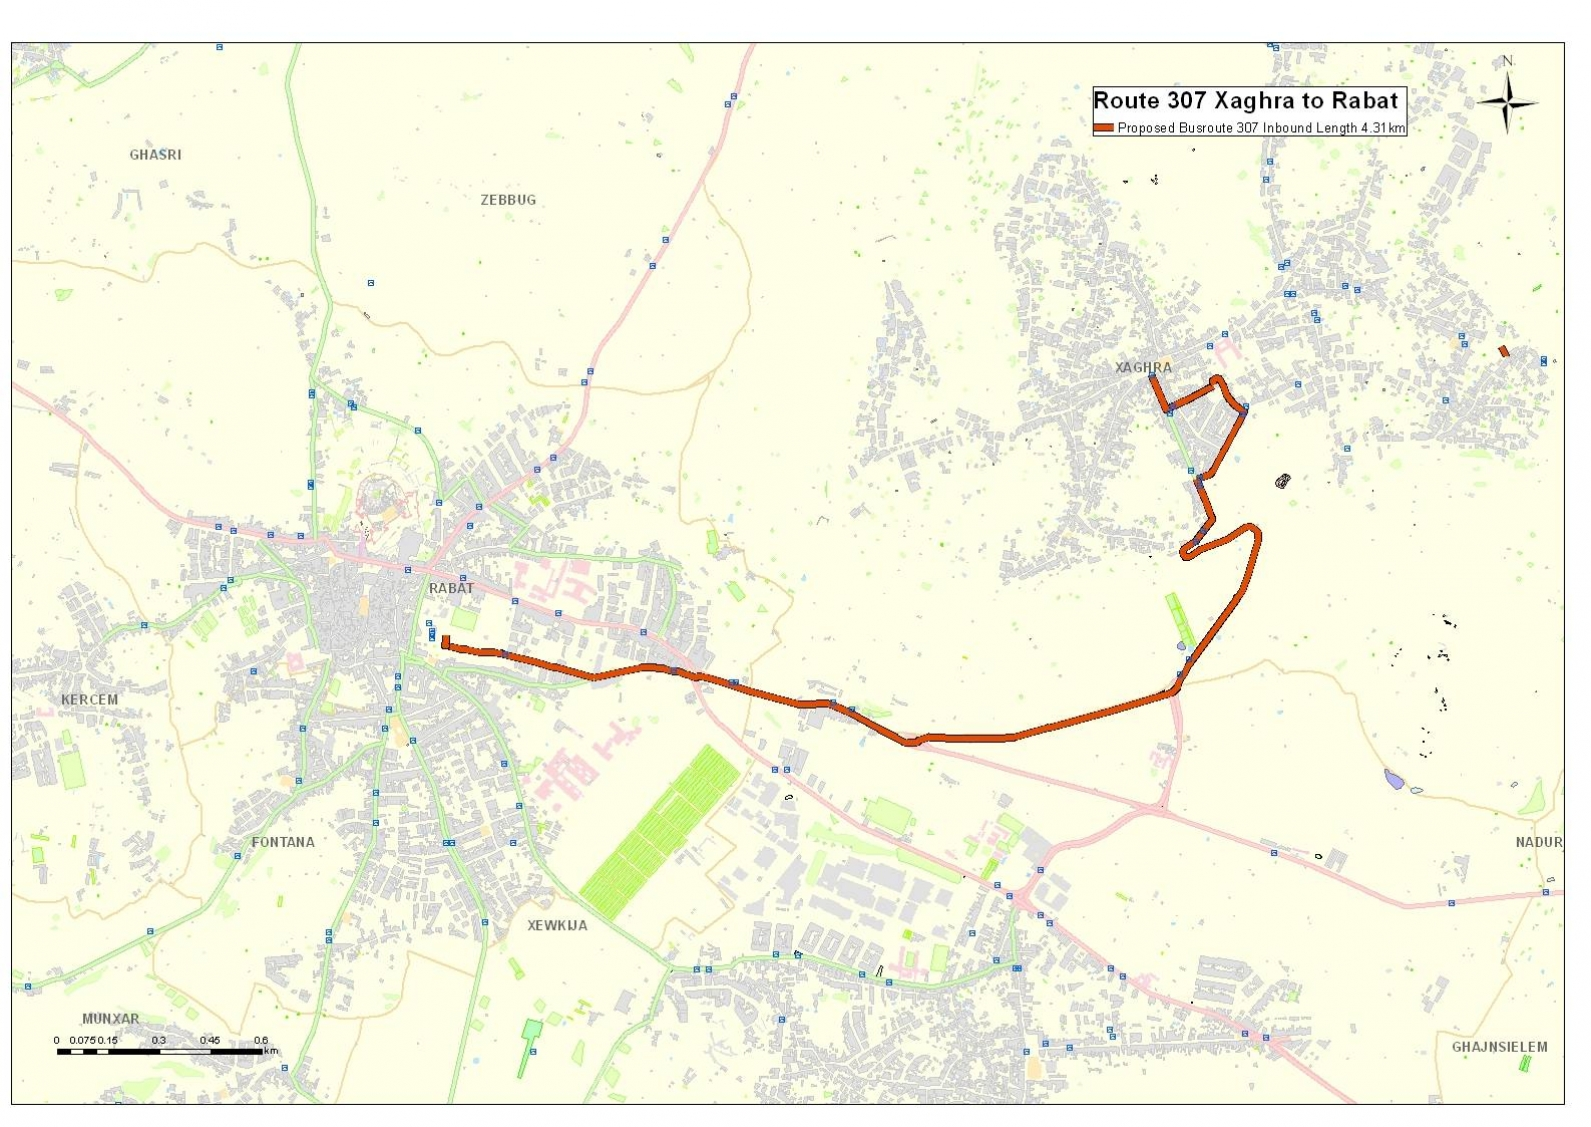 Land-current-network-routes-and-schedules-Gozo-13